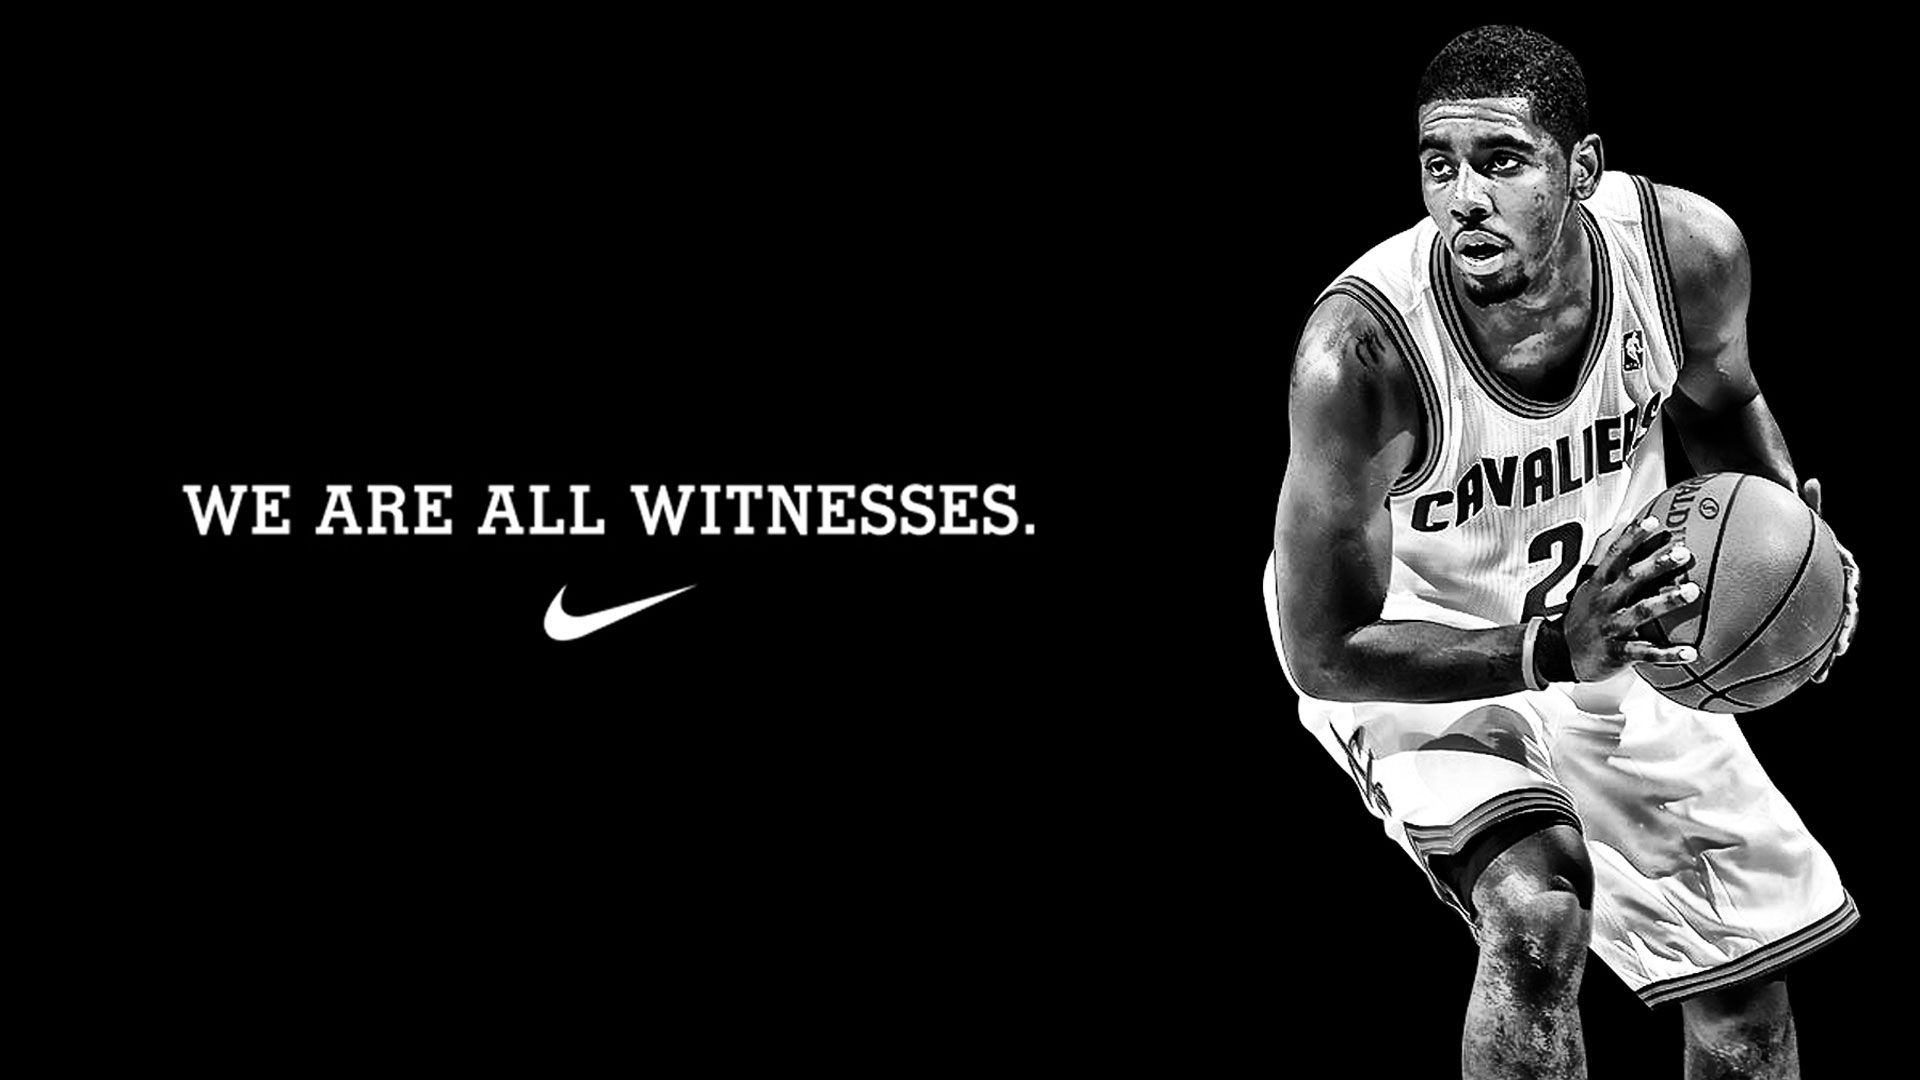 Nike We Are All Witnesses Hd Wallpaper Download